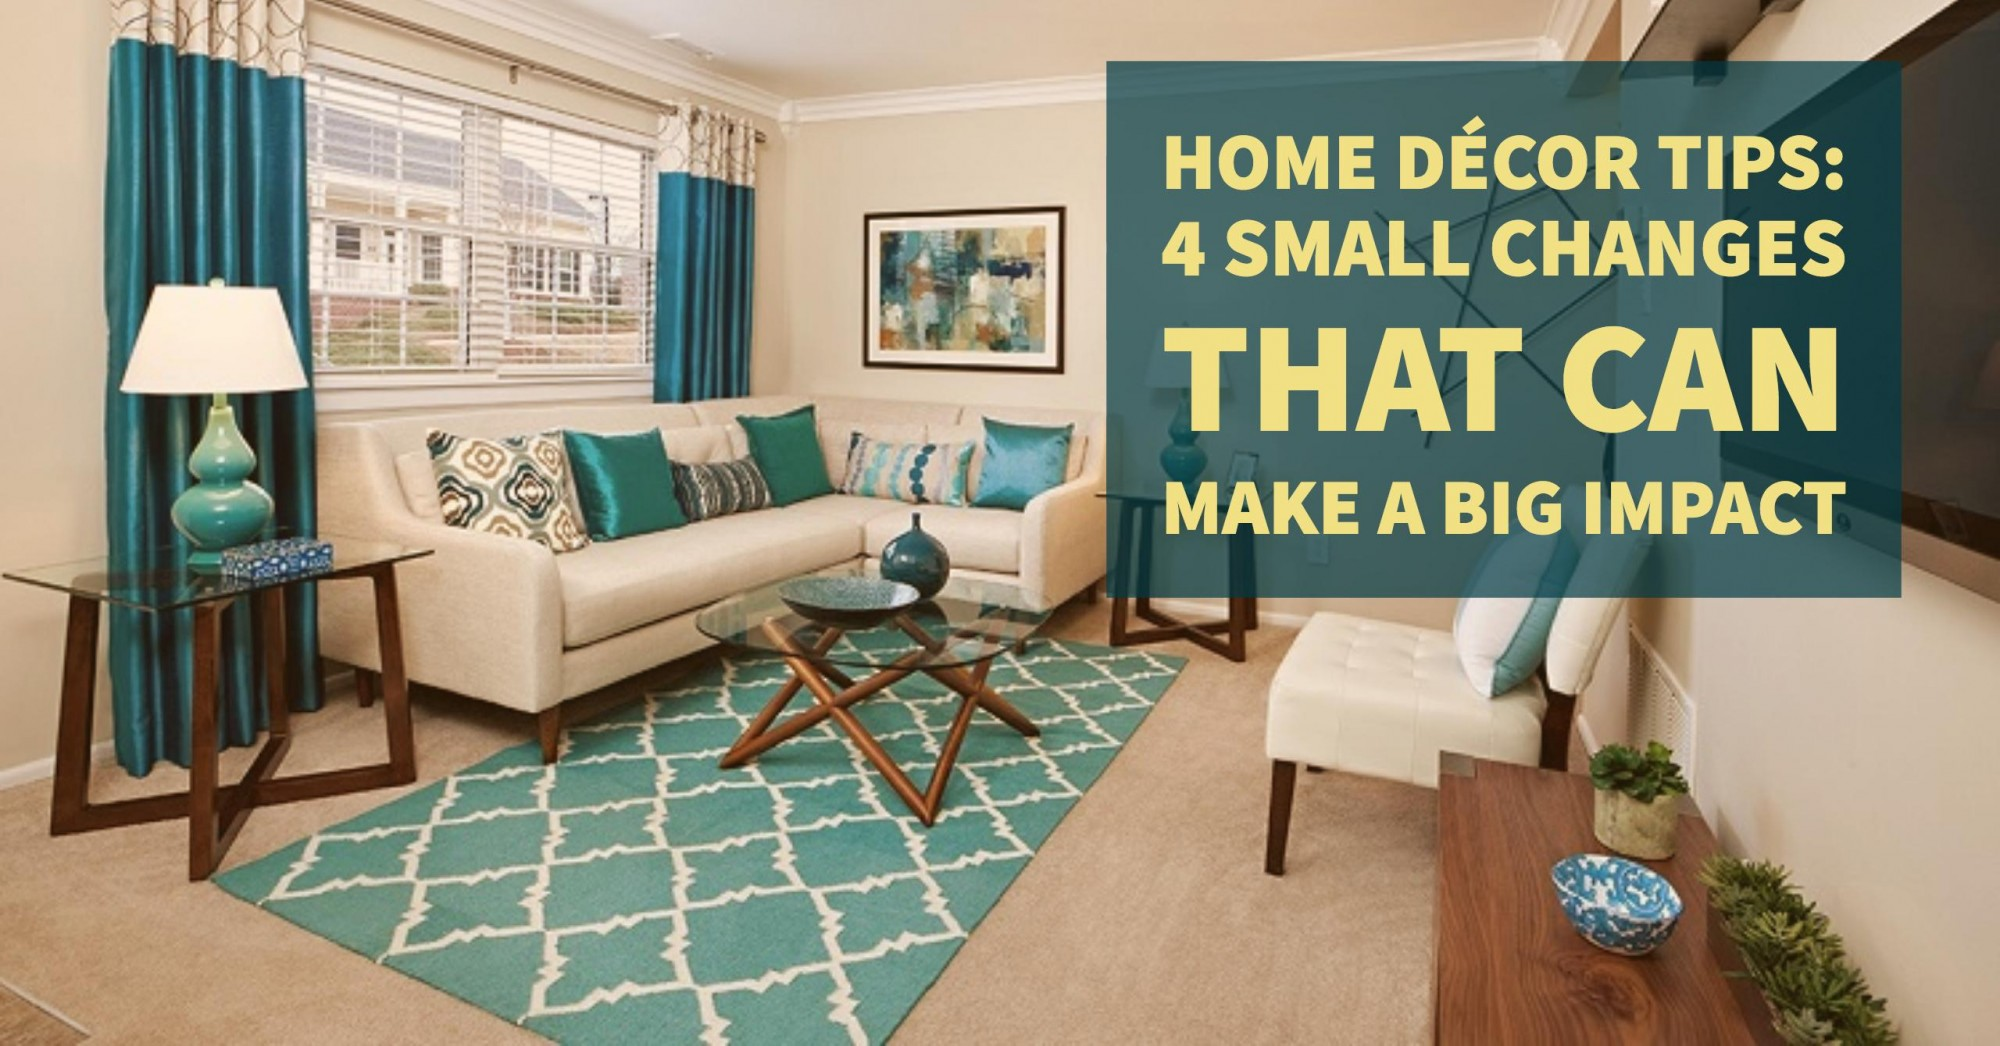 Home Decor Tips: 4 Small Changes that Can Make a Big Impact